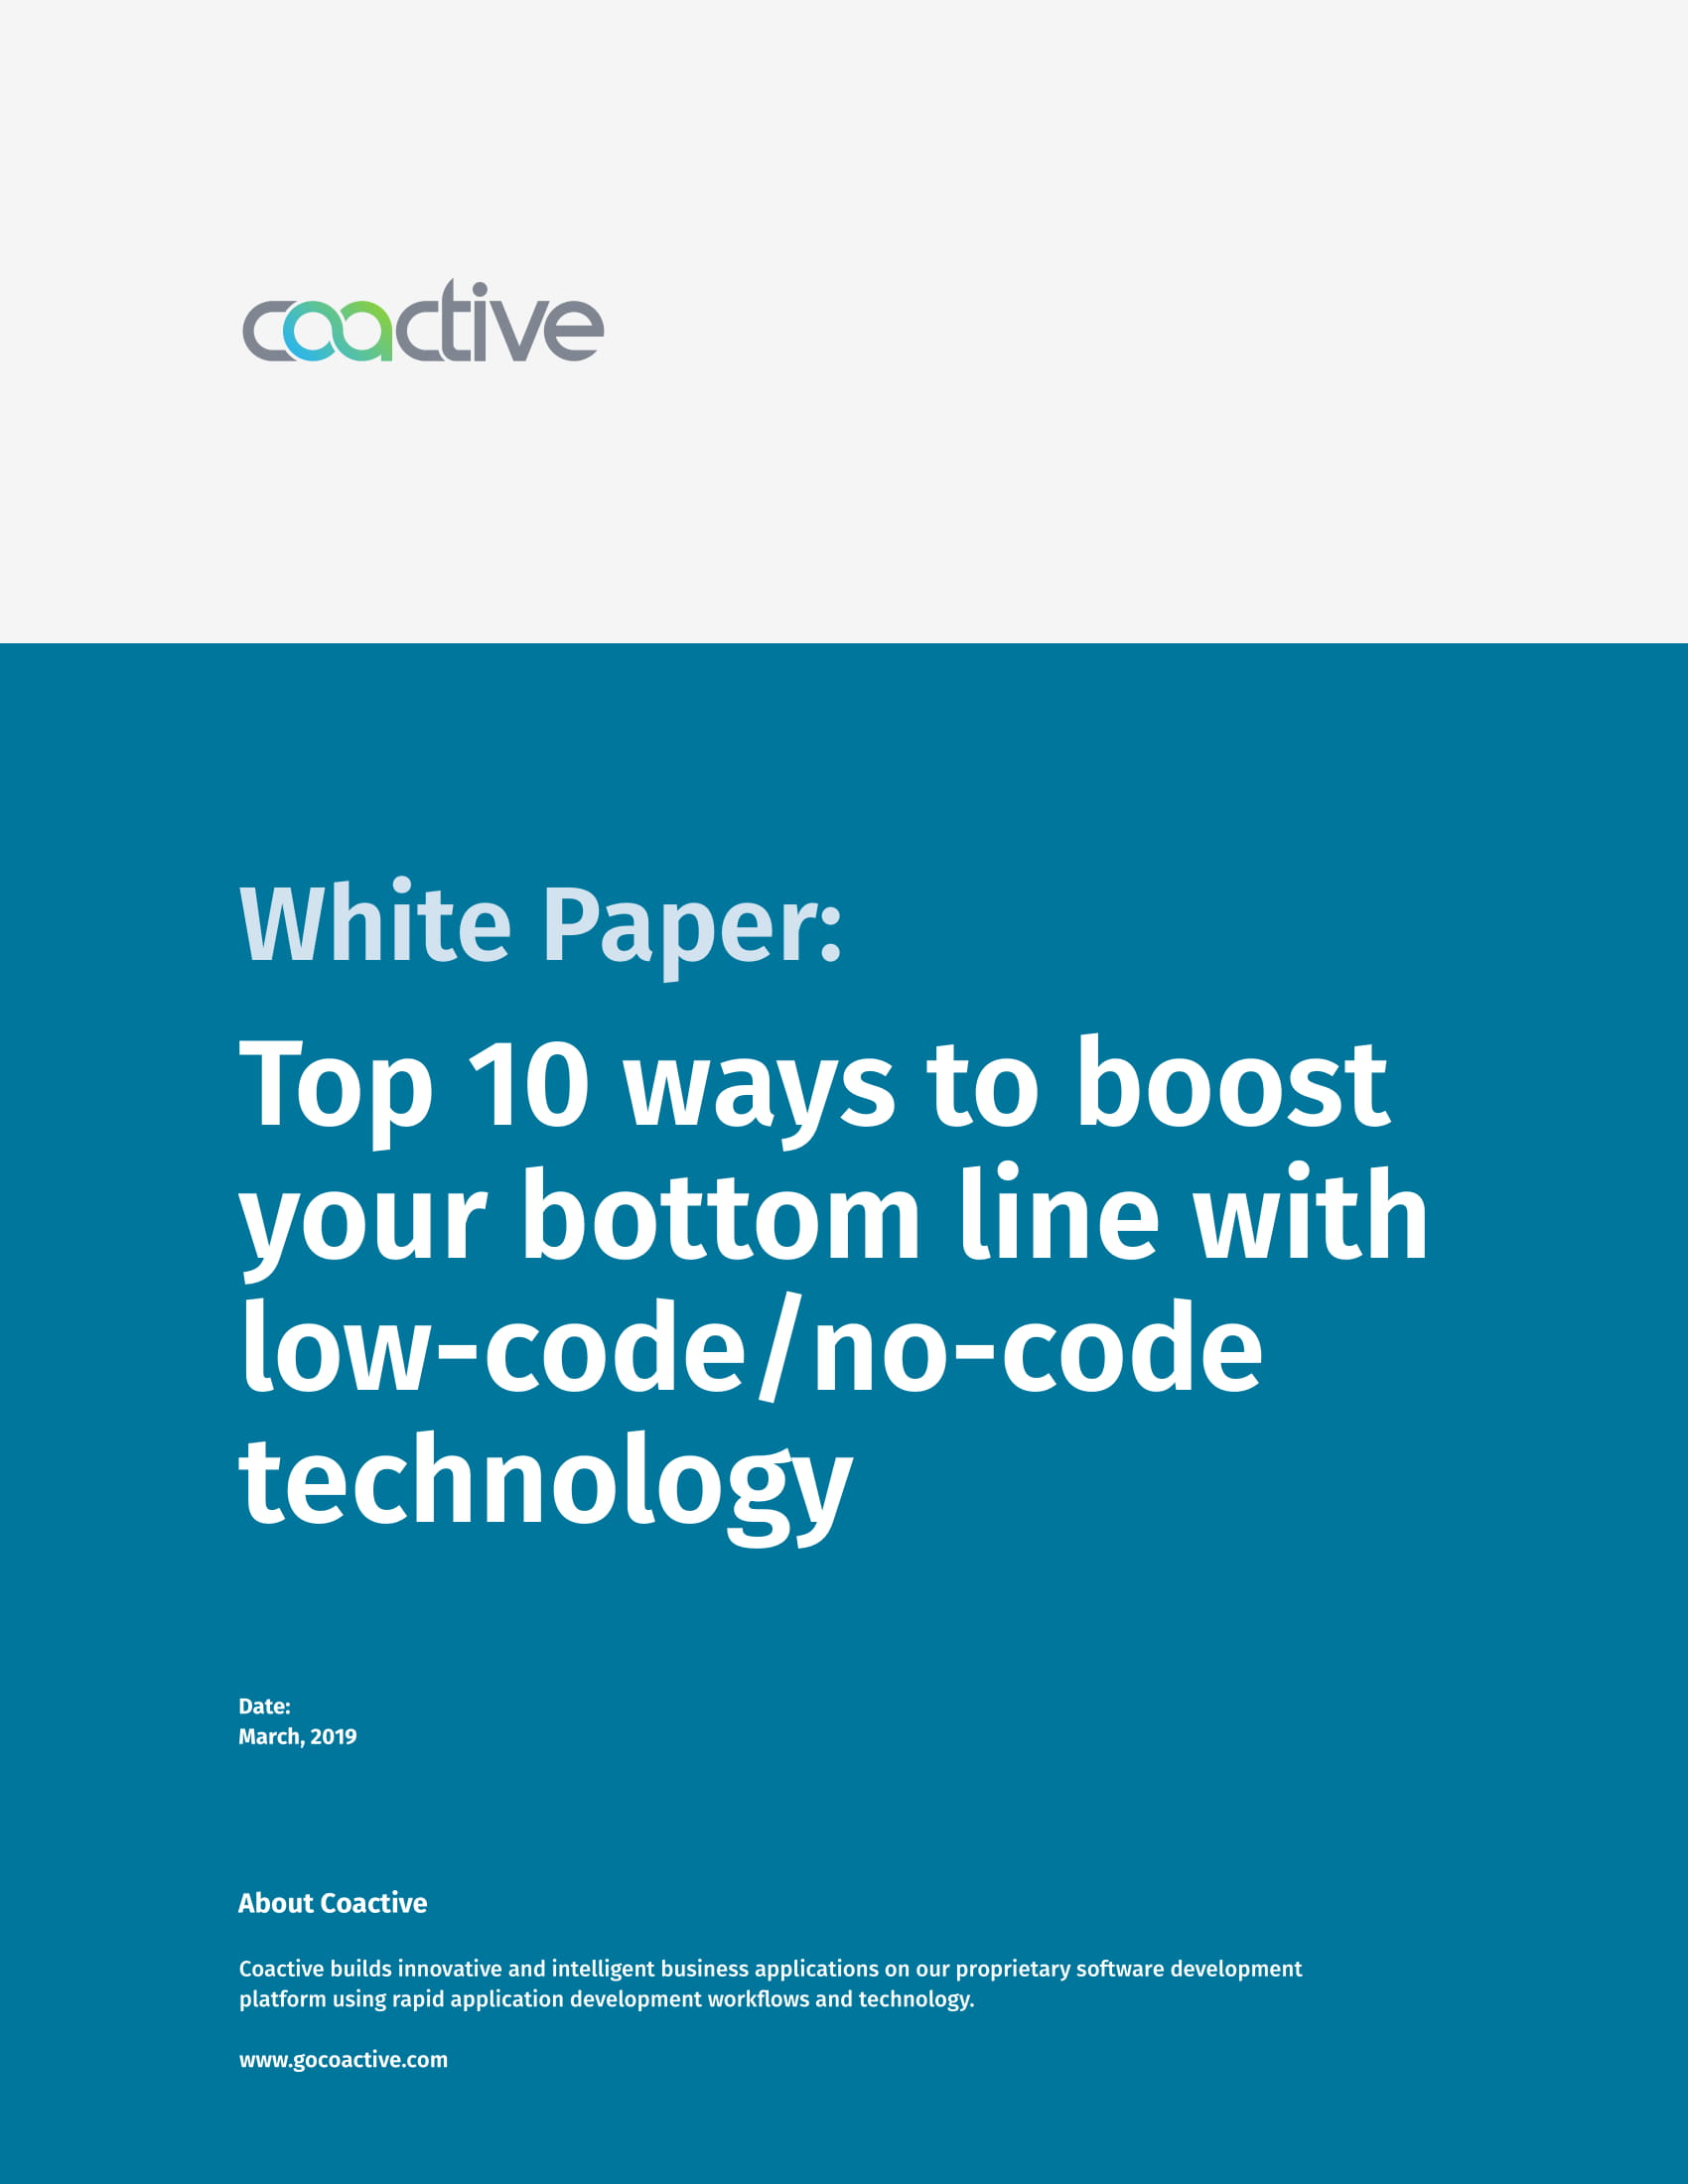 coactive_whitepaper_boost_revenue.jpg